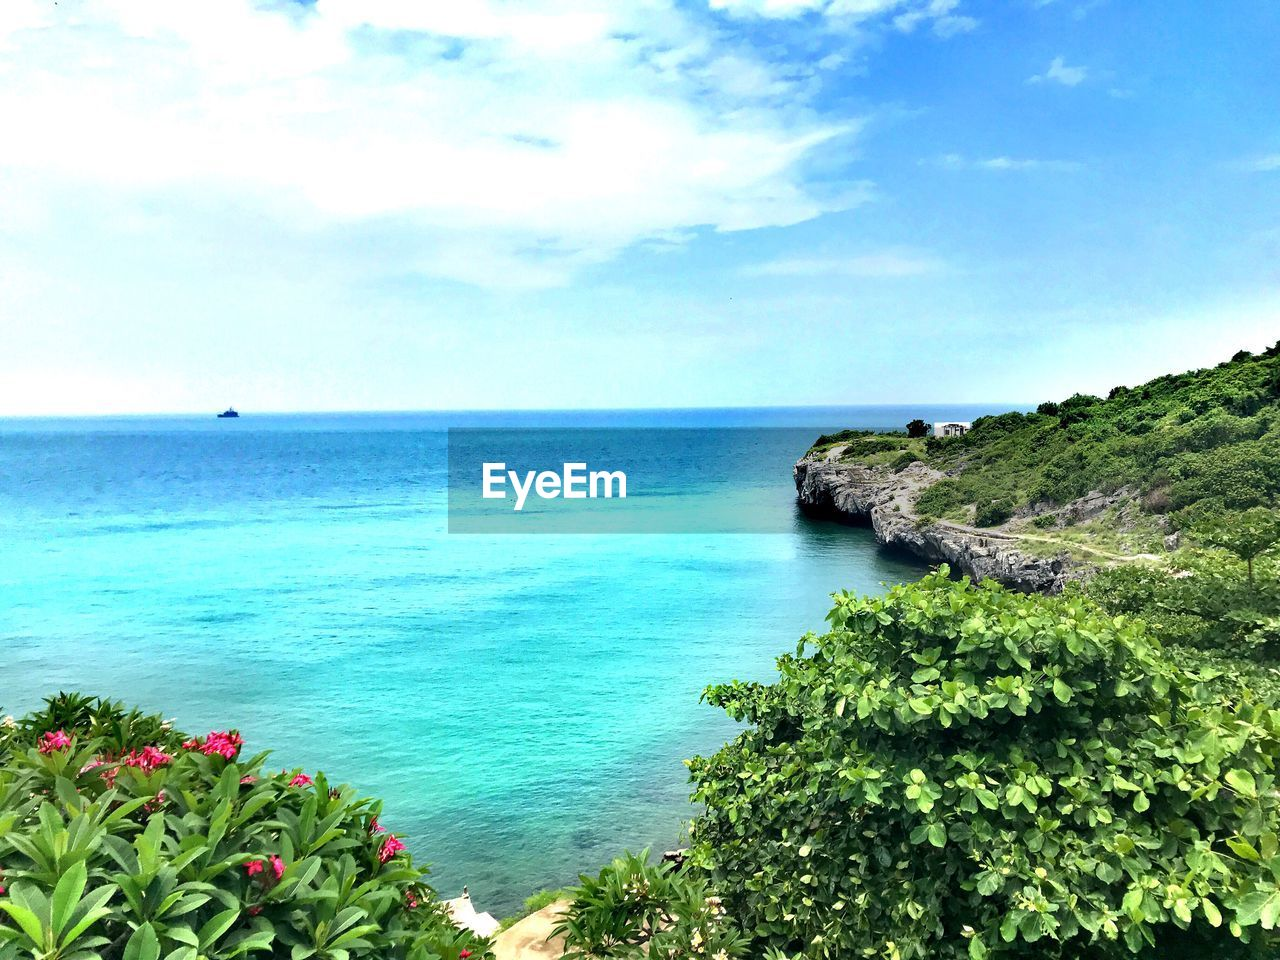 sea, beauty in nature, water, scenics - nature, sky, plant, tranquil scene, horizon, horizon over water, tranquility, nature, cloud - sky, day, growth, land, no people, tree, flower, green color, outdoors, turquoise colored